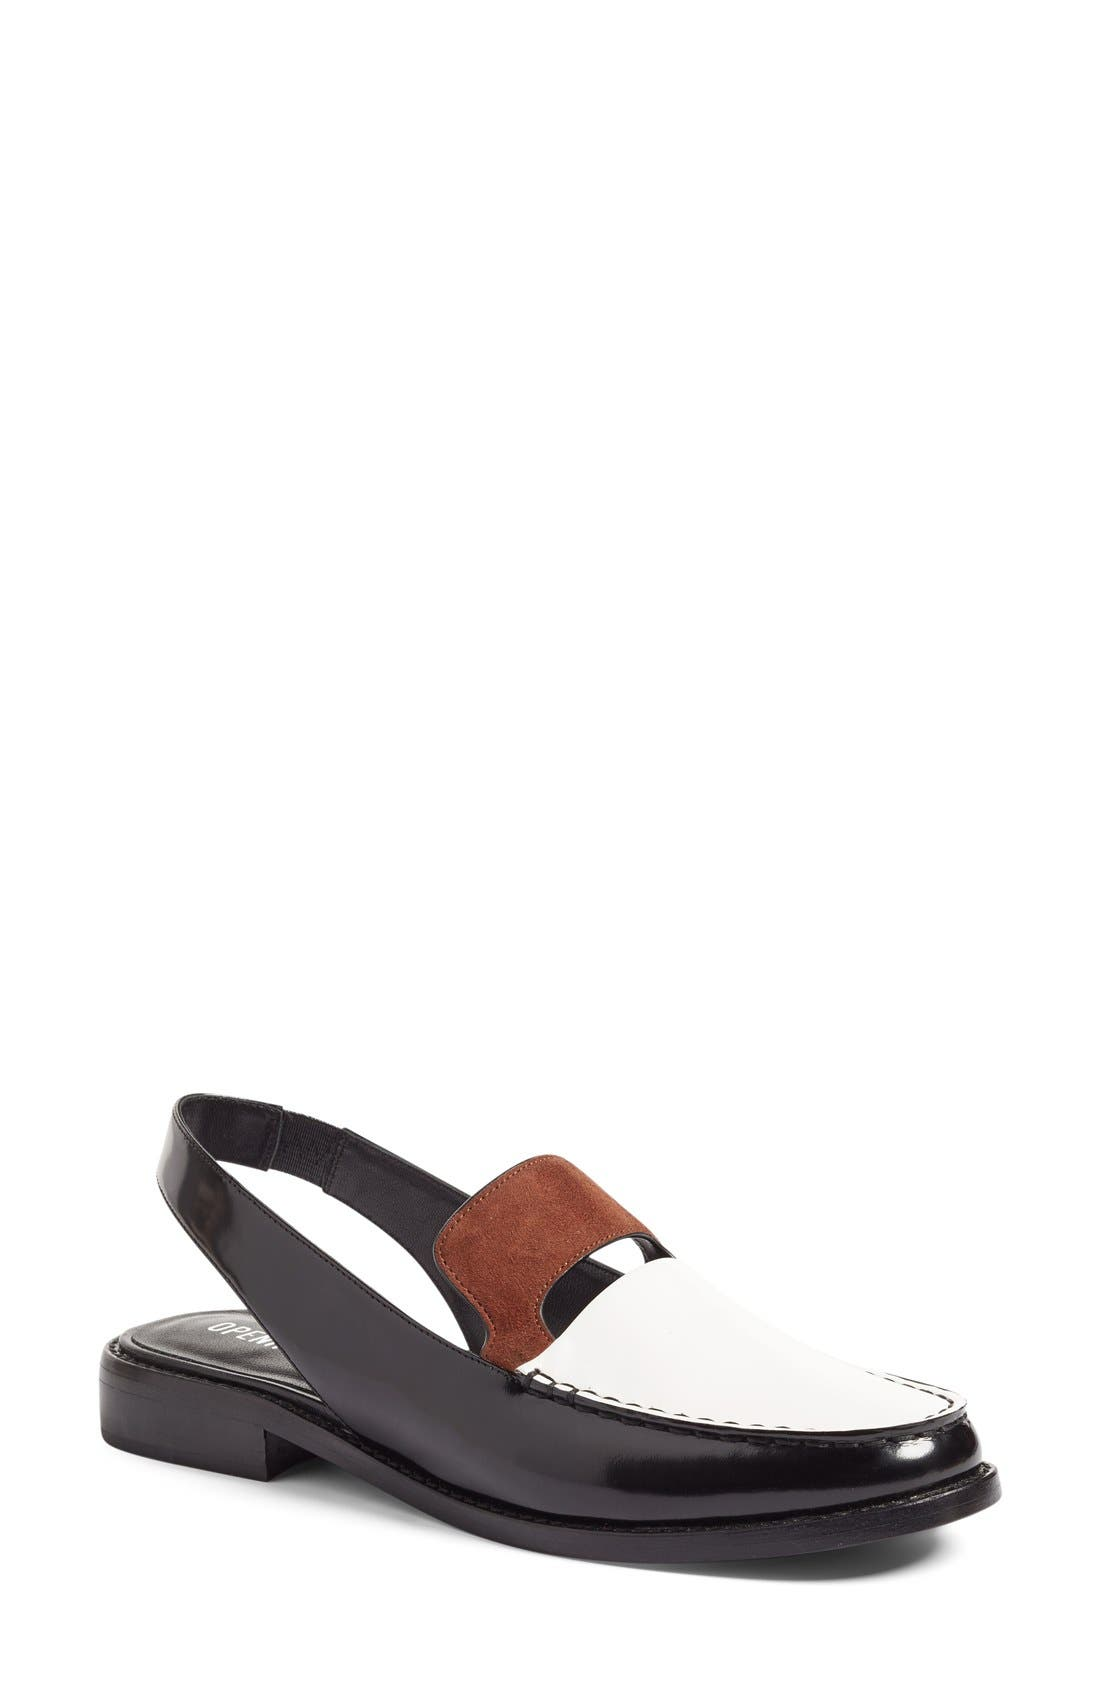 OPENING CEREMONY Bettsy Slingback Loafer